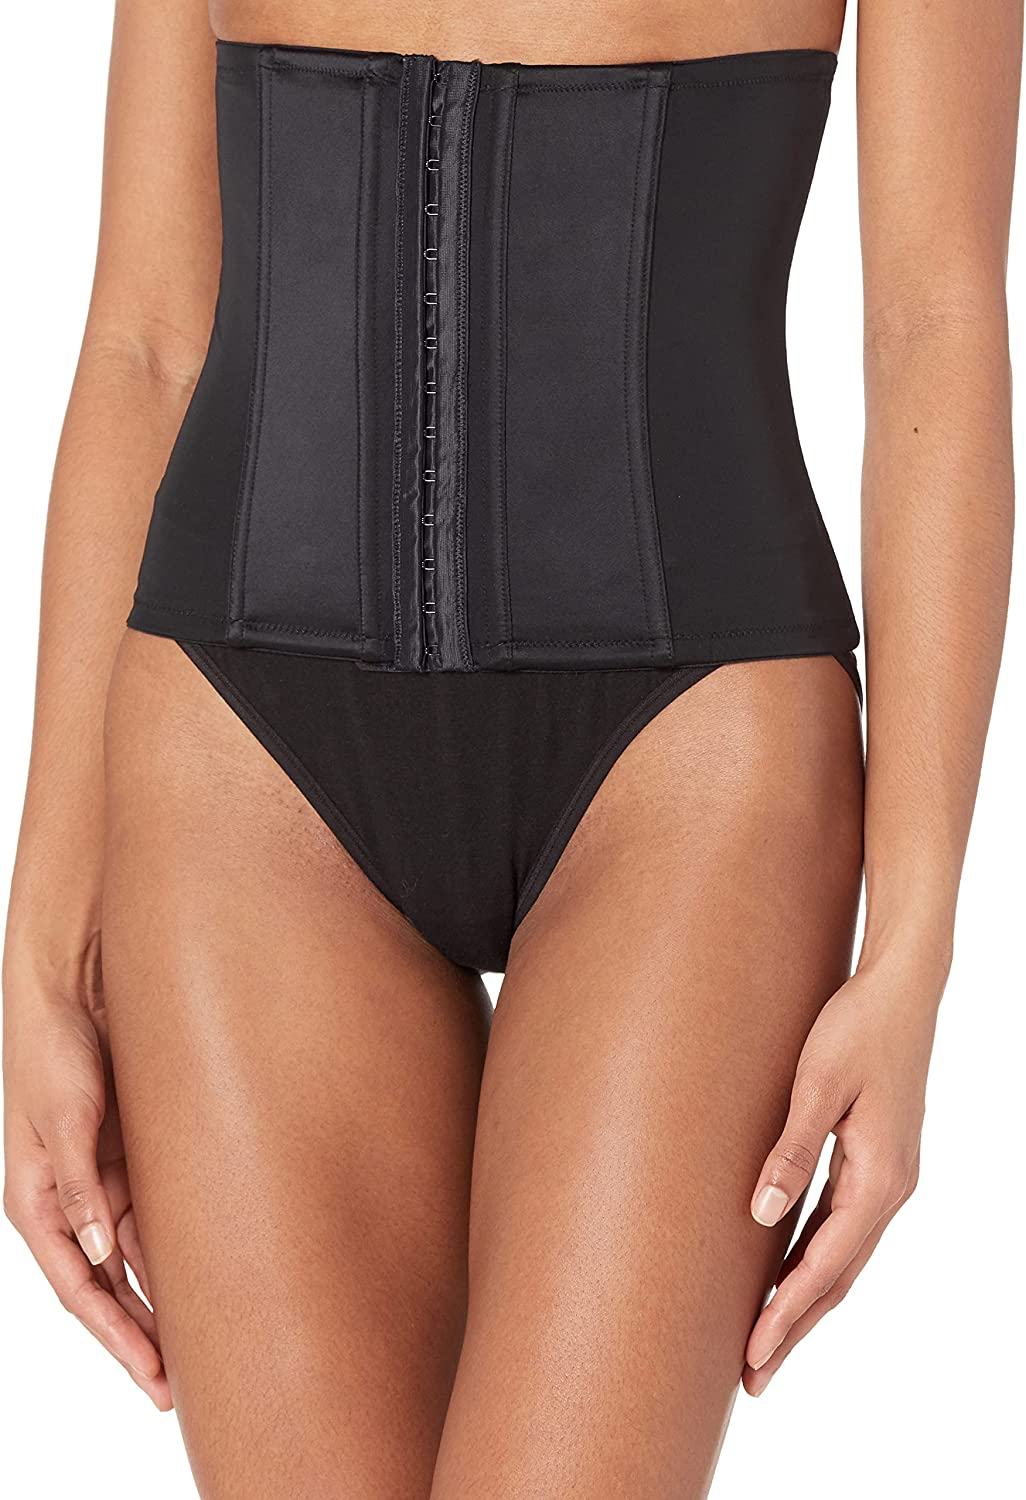 Amazon Brand - Arabella Women's Waist Max Factory outlet 78% OFF with Firm Control Cincher